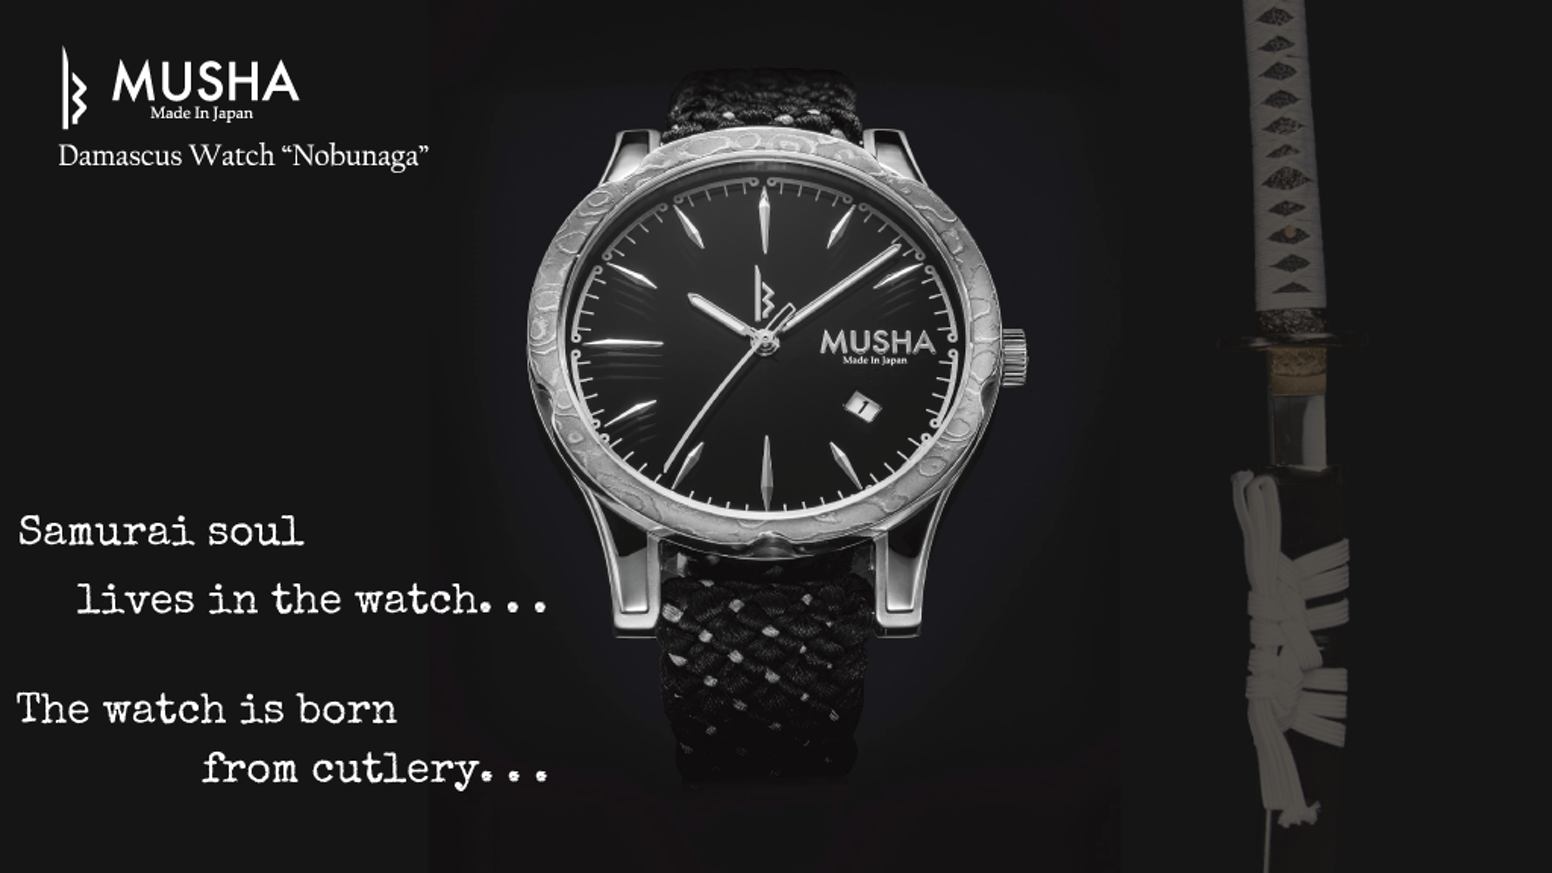 MUSHA One of a Kind Wrist watch Made of Japanese Sword Steel is the top crowdfunding project launched today. MUSHA One of a Kind Wrist watch Made of Japanese Sword Steel raised over $820109 from 26 backers. Other top projects include CA-TON Designed STORAGE BOX MADE IN JAPAN with App ?????????, OUTDOORS - Aryz book, Tu vida nuestra Prioridad...